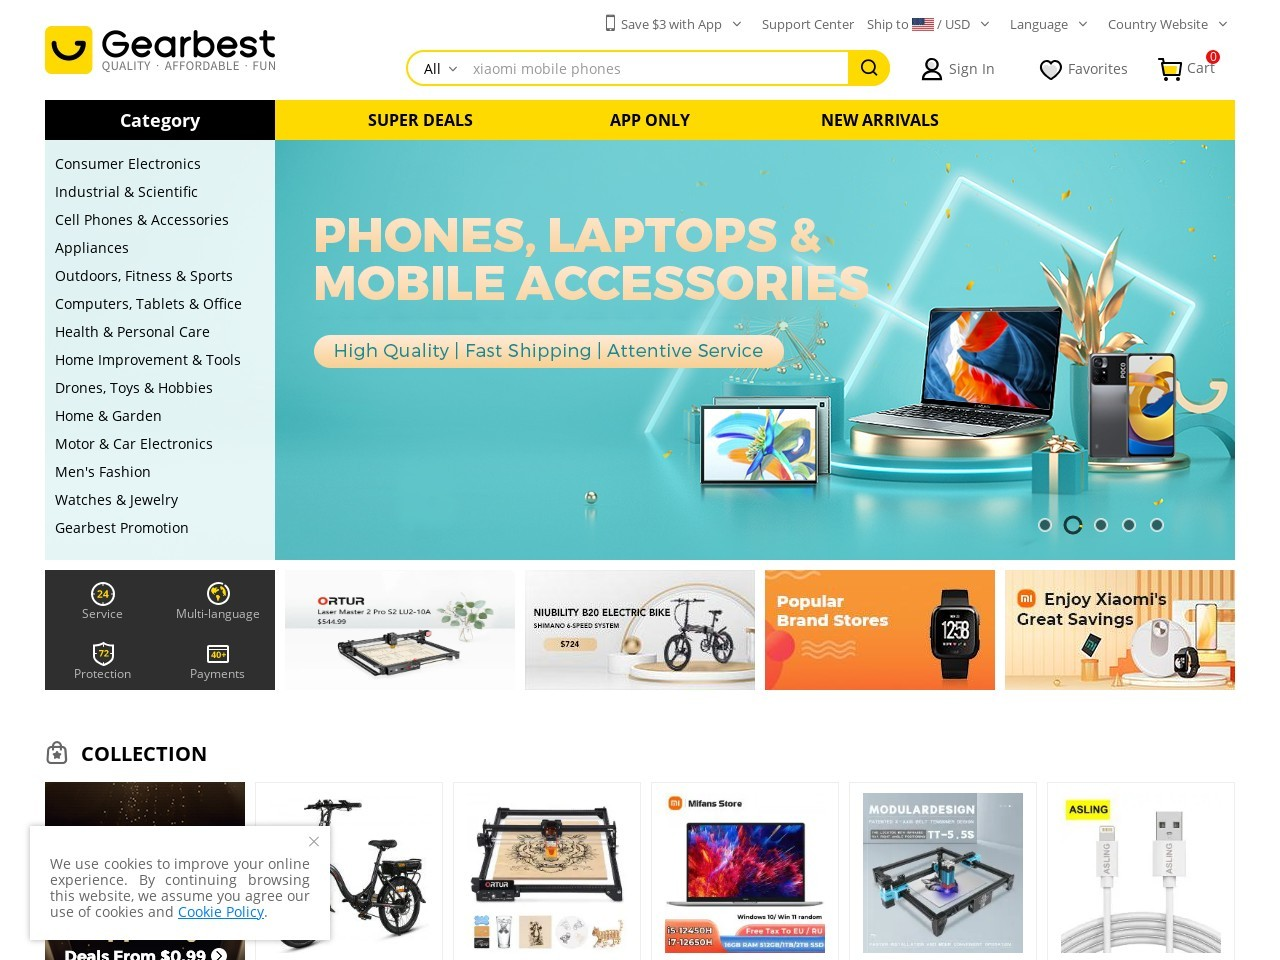 11.11 Sale Mobile Phone and Tablets Daily Flash Sale from Just $11.11